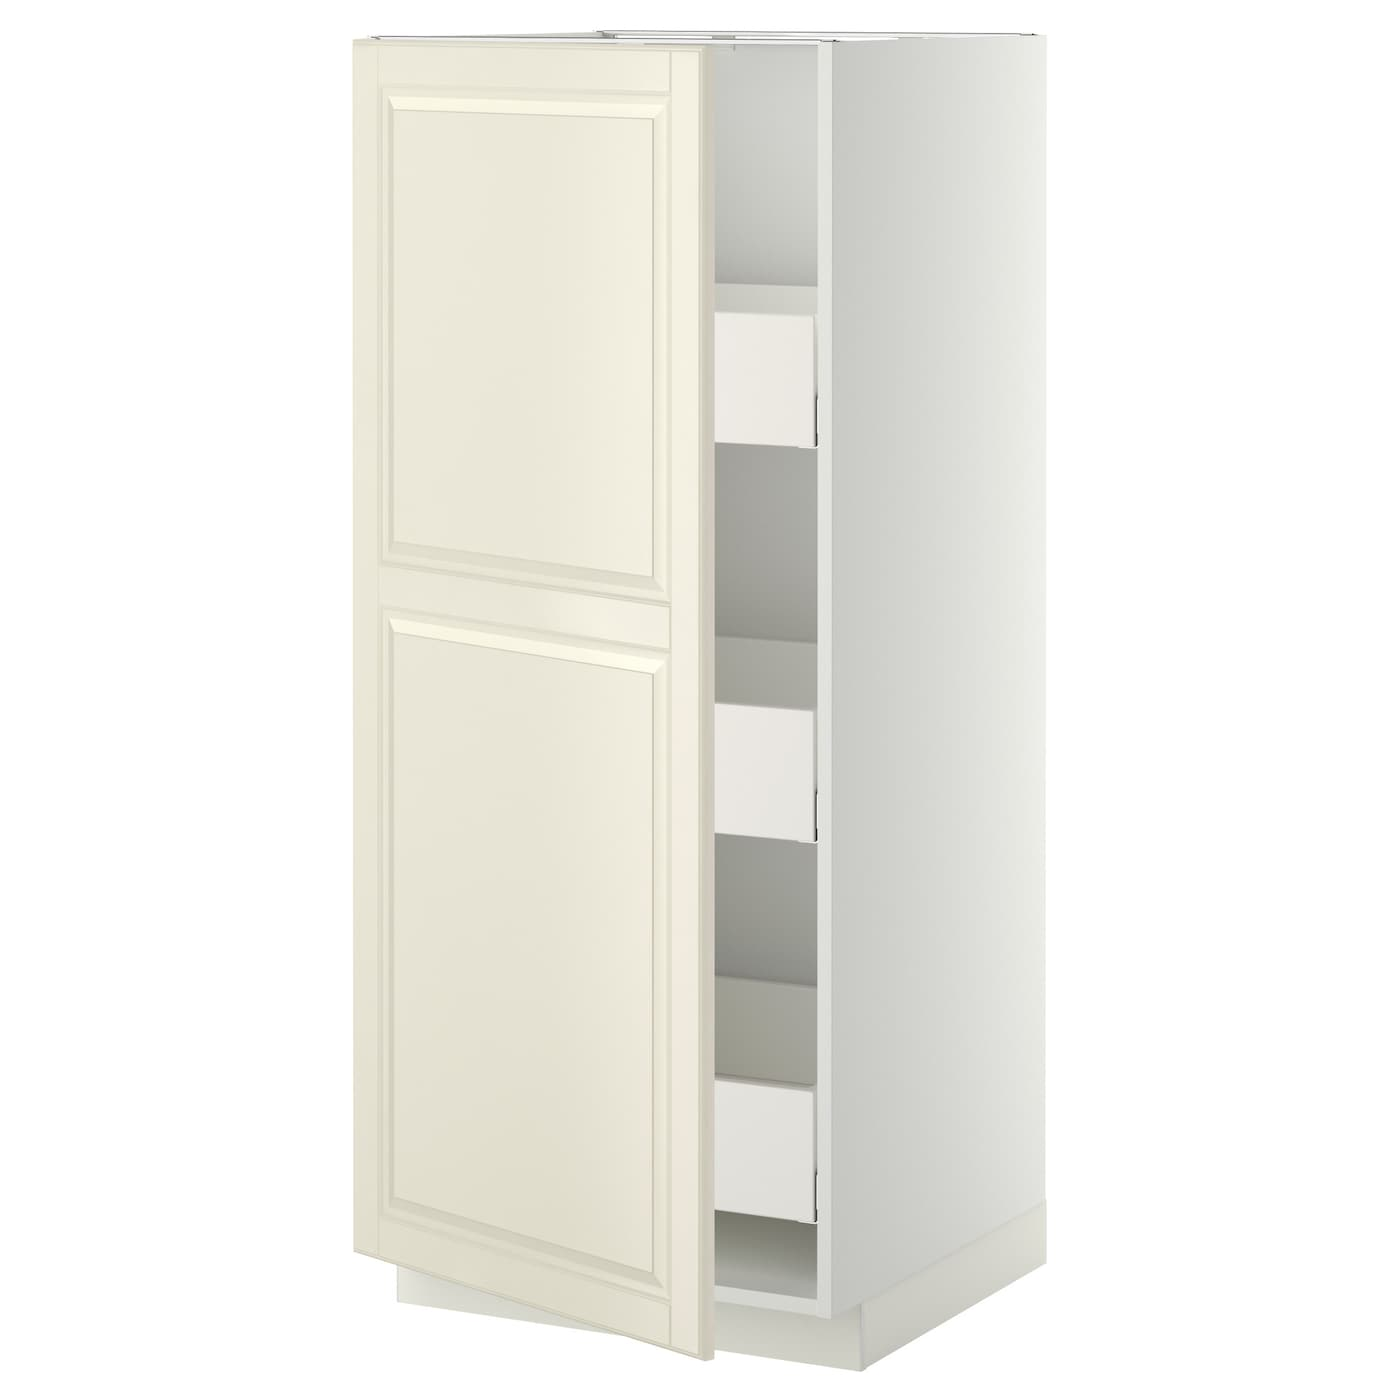 Metod Maximera High Cabinet With Drawers White Bodbyn Off White 60x60x140 Cm Ikea